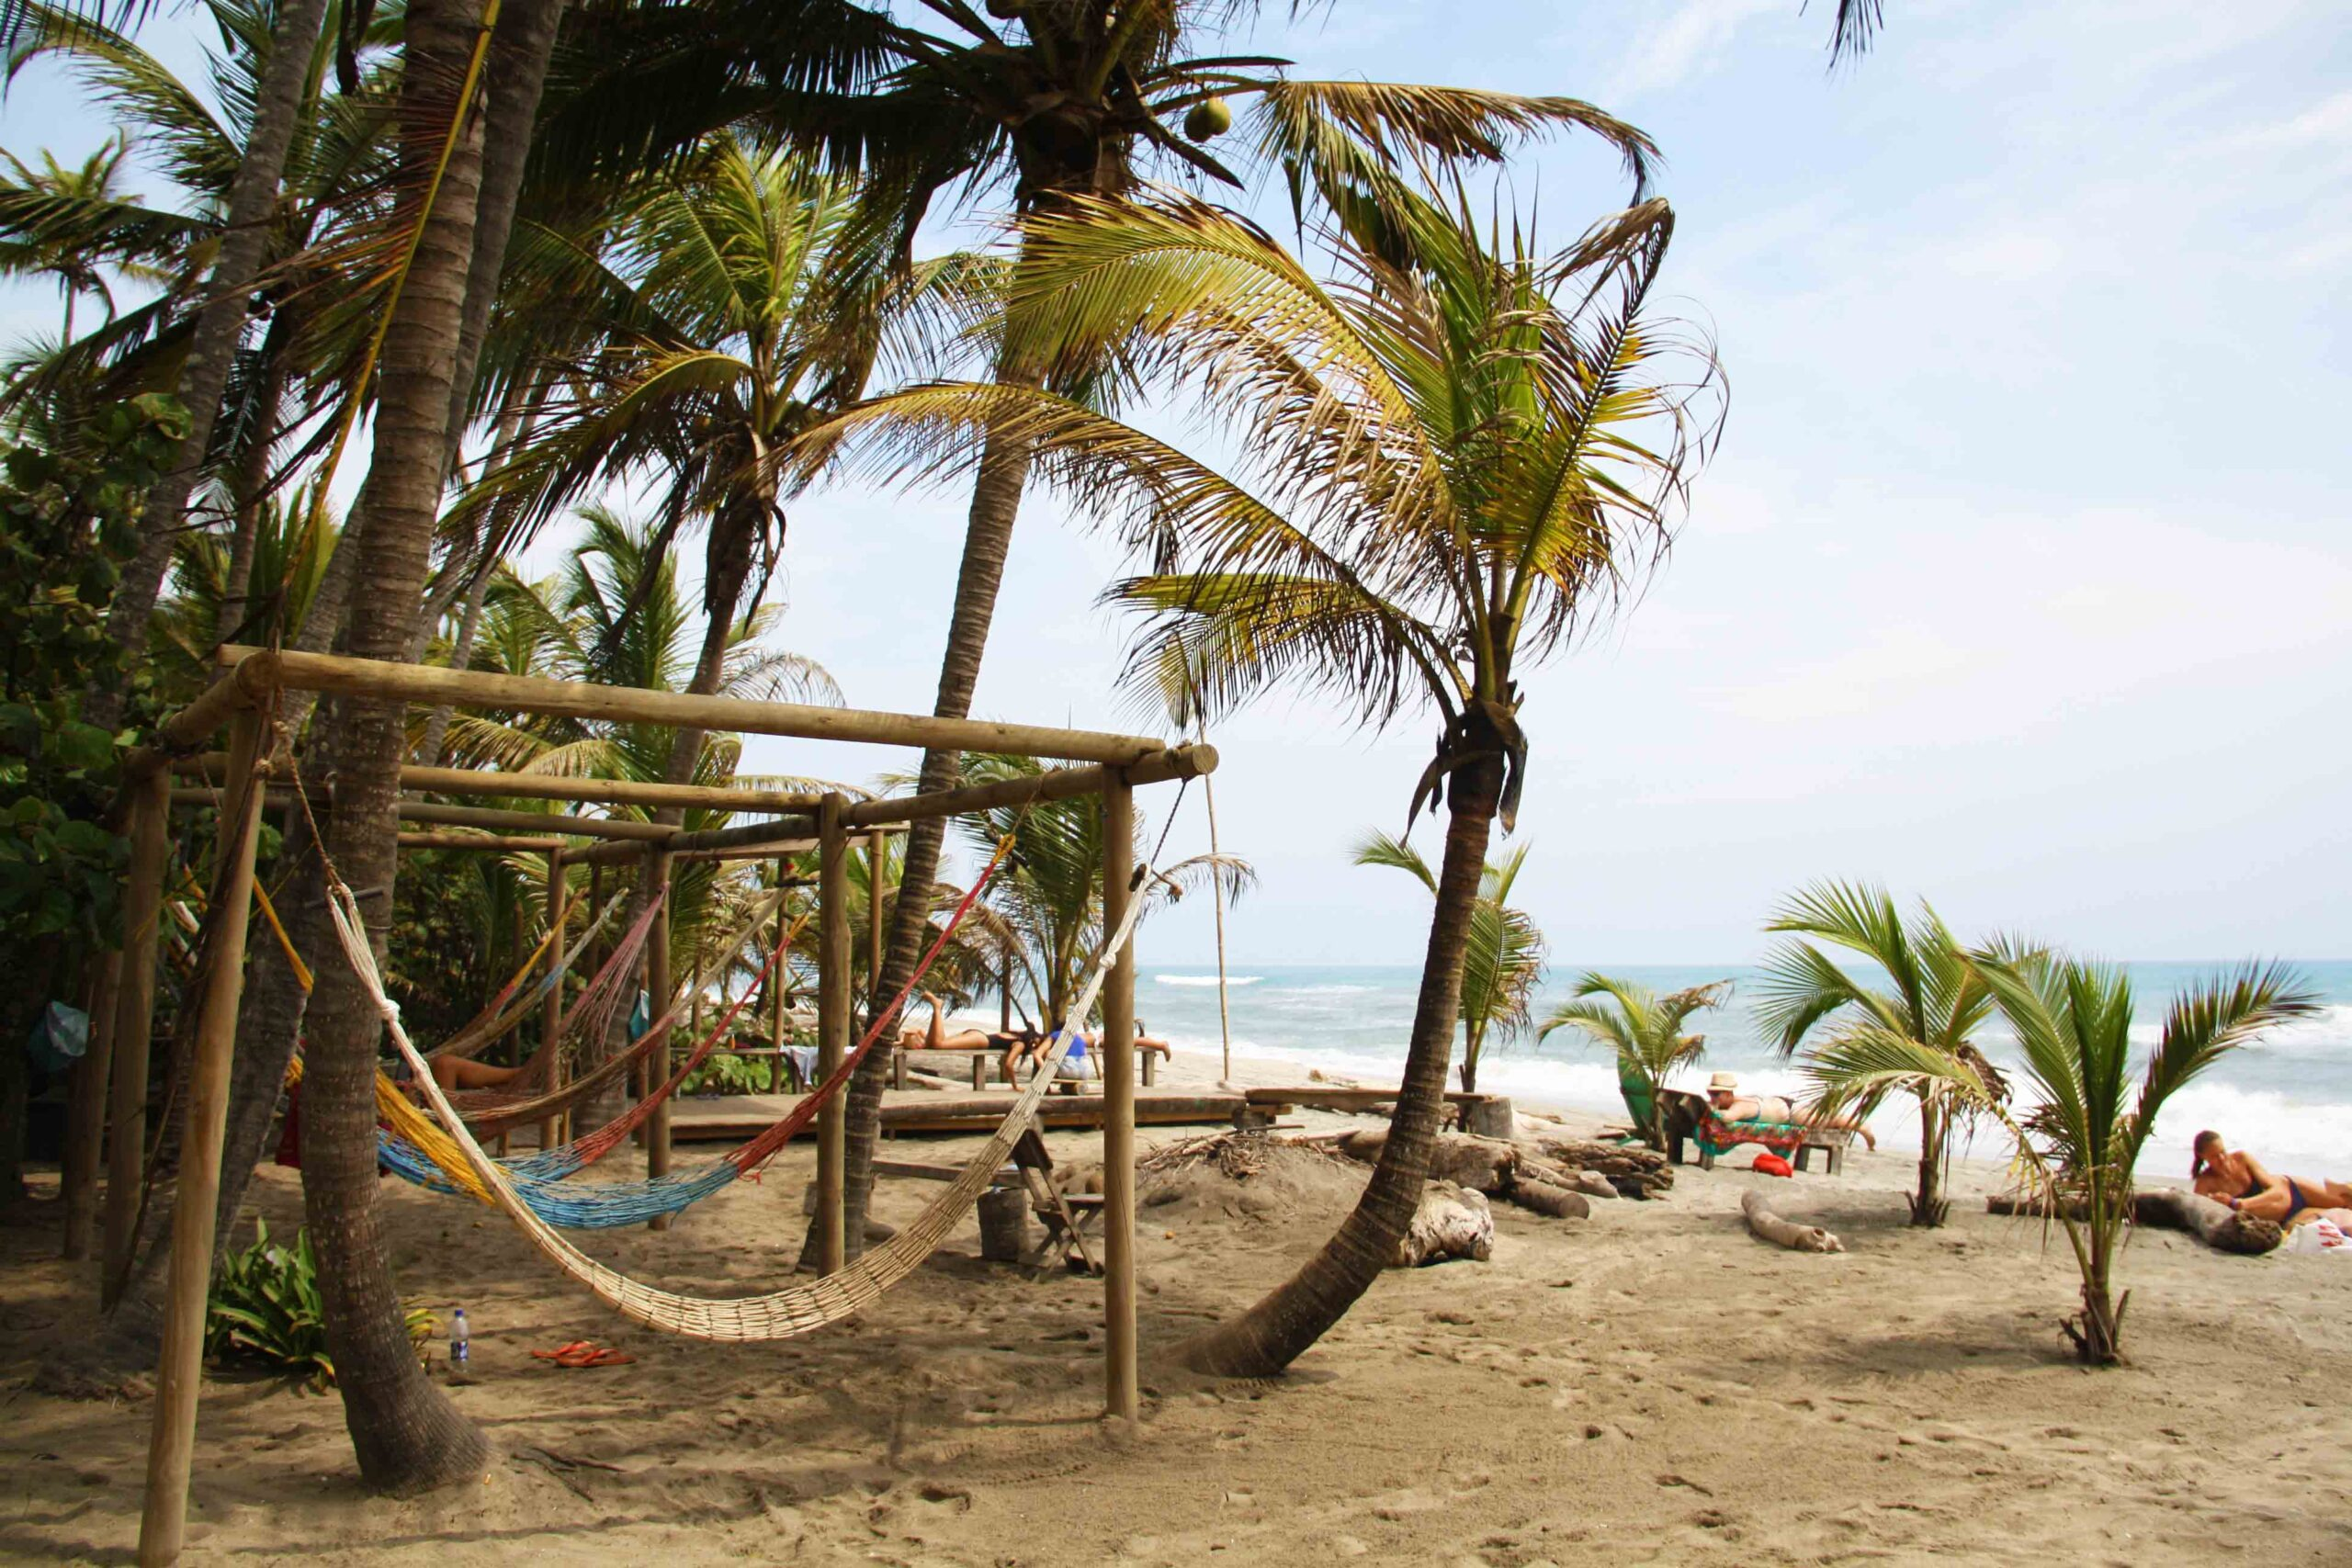 costeno_beach surf destinations hammocks colombia